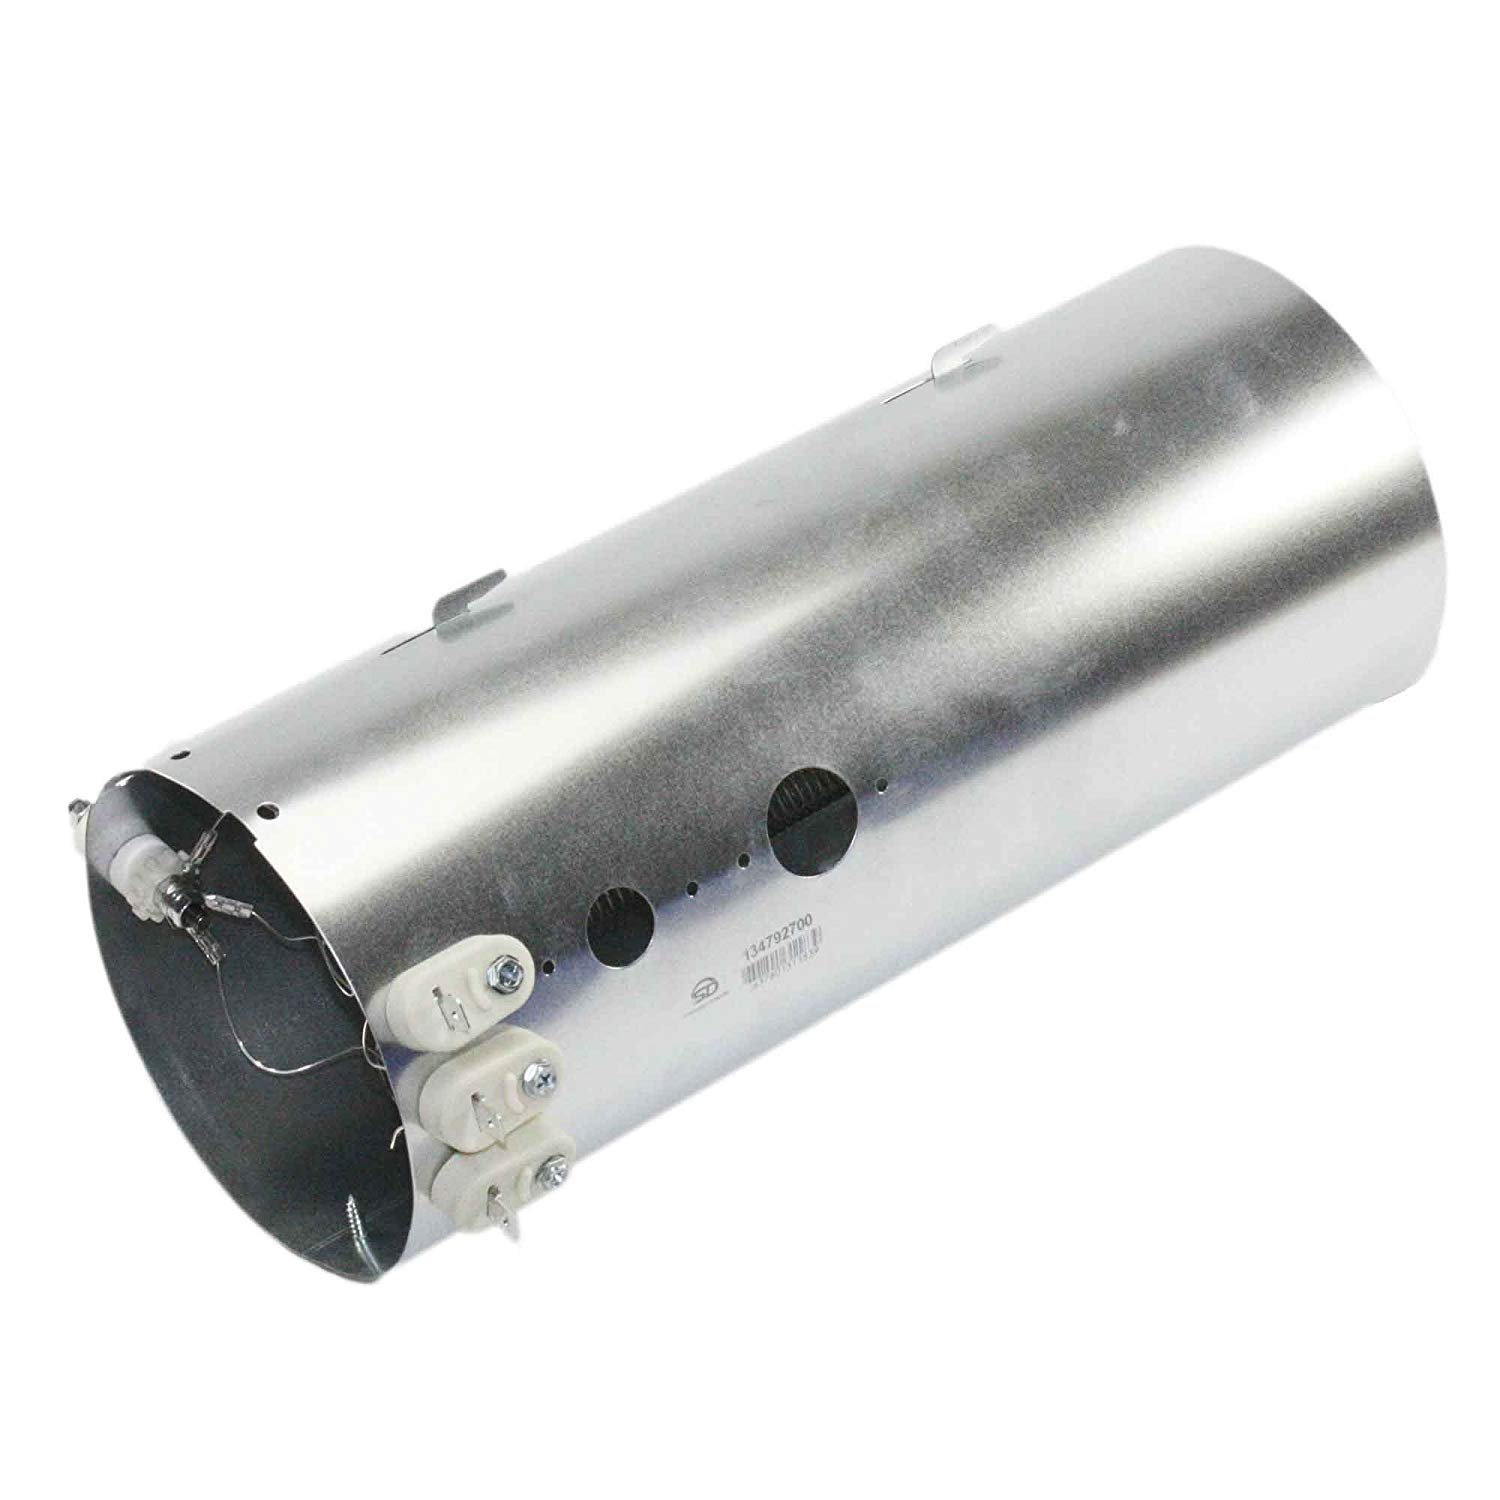 134792700 Heater Compatible with Frigidaire Dryer